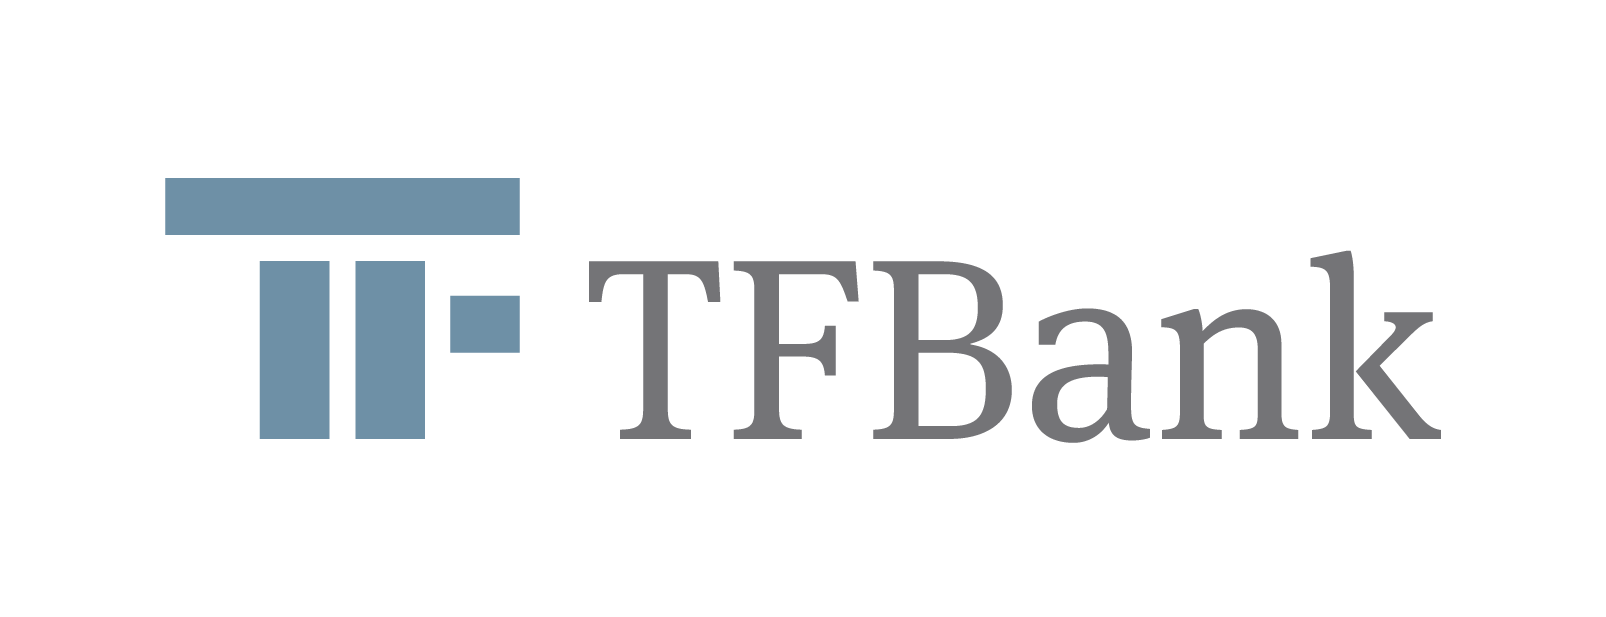 TFBank_logo_colour_large.png